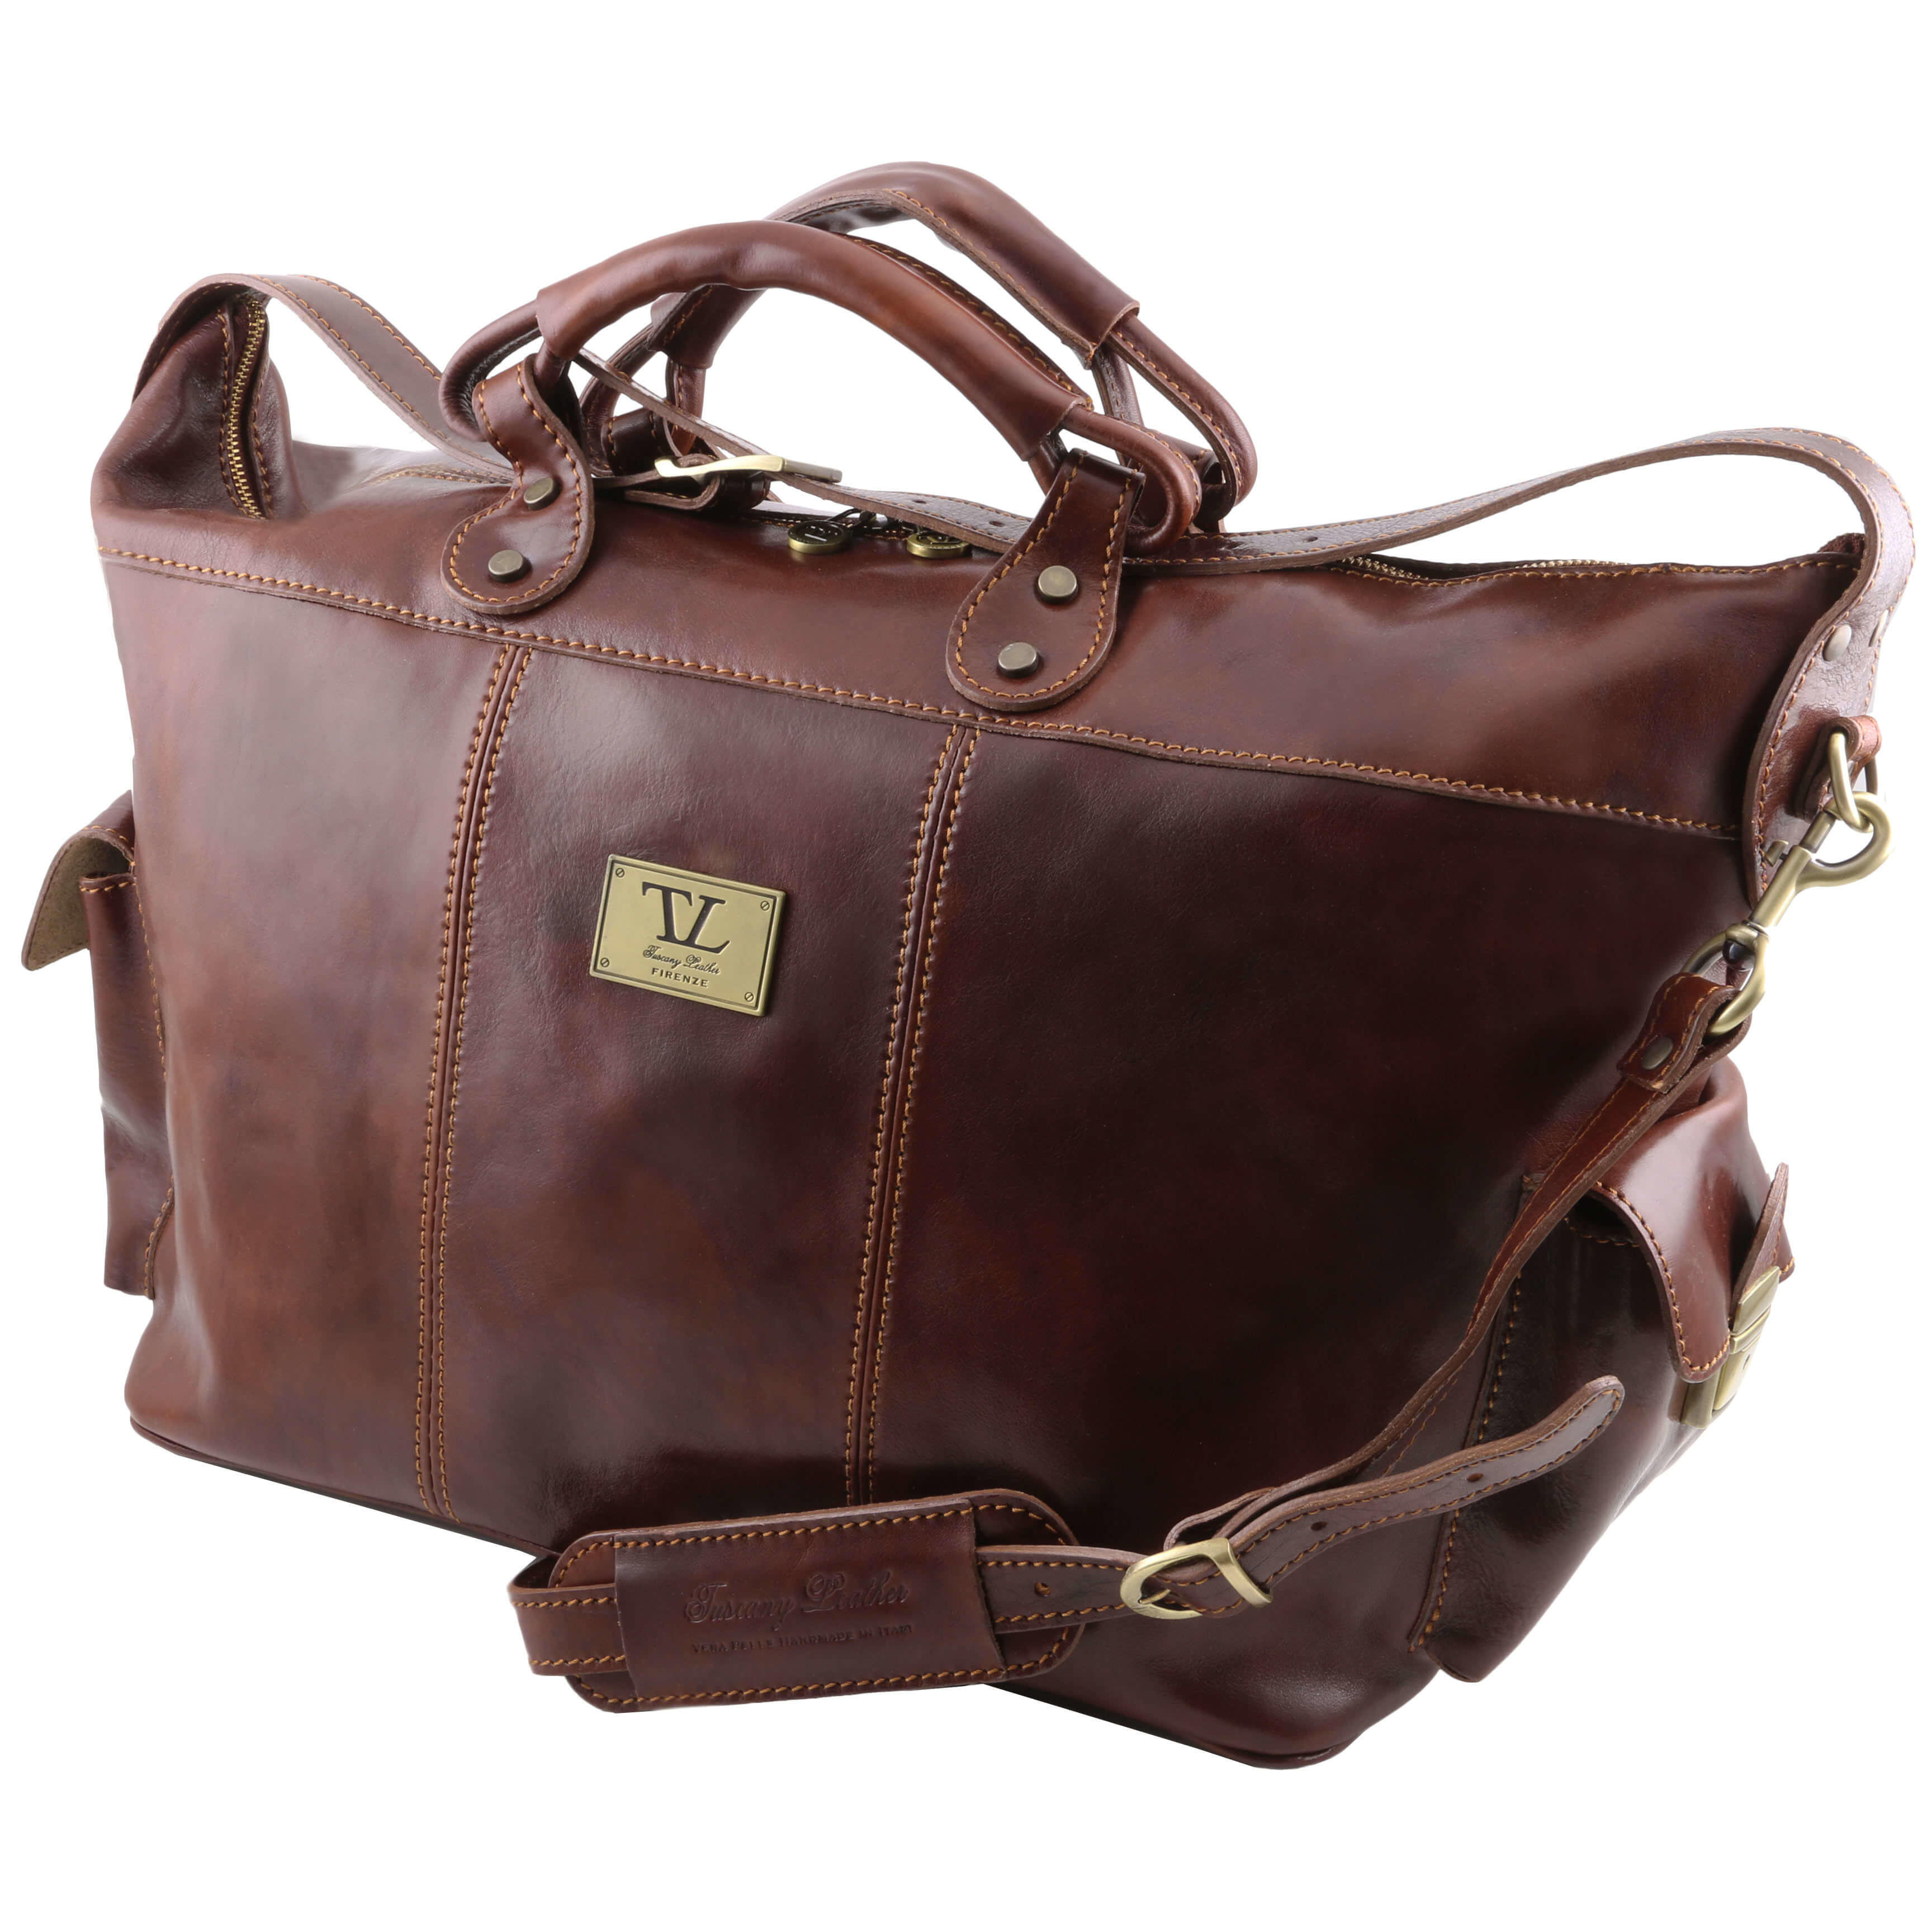 TL140938 Porto Leather Travel - Luggage  - Duffel - Bag - Holdal